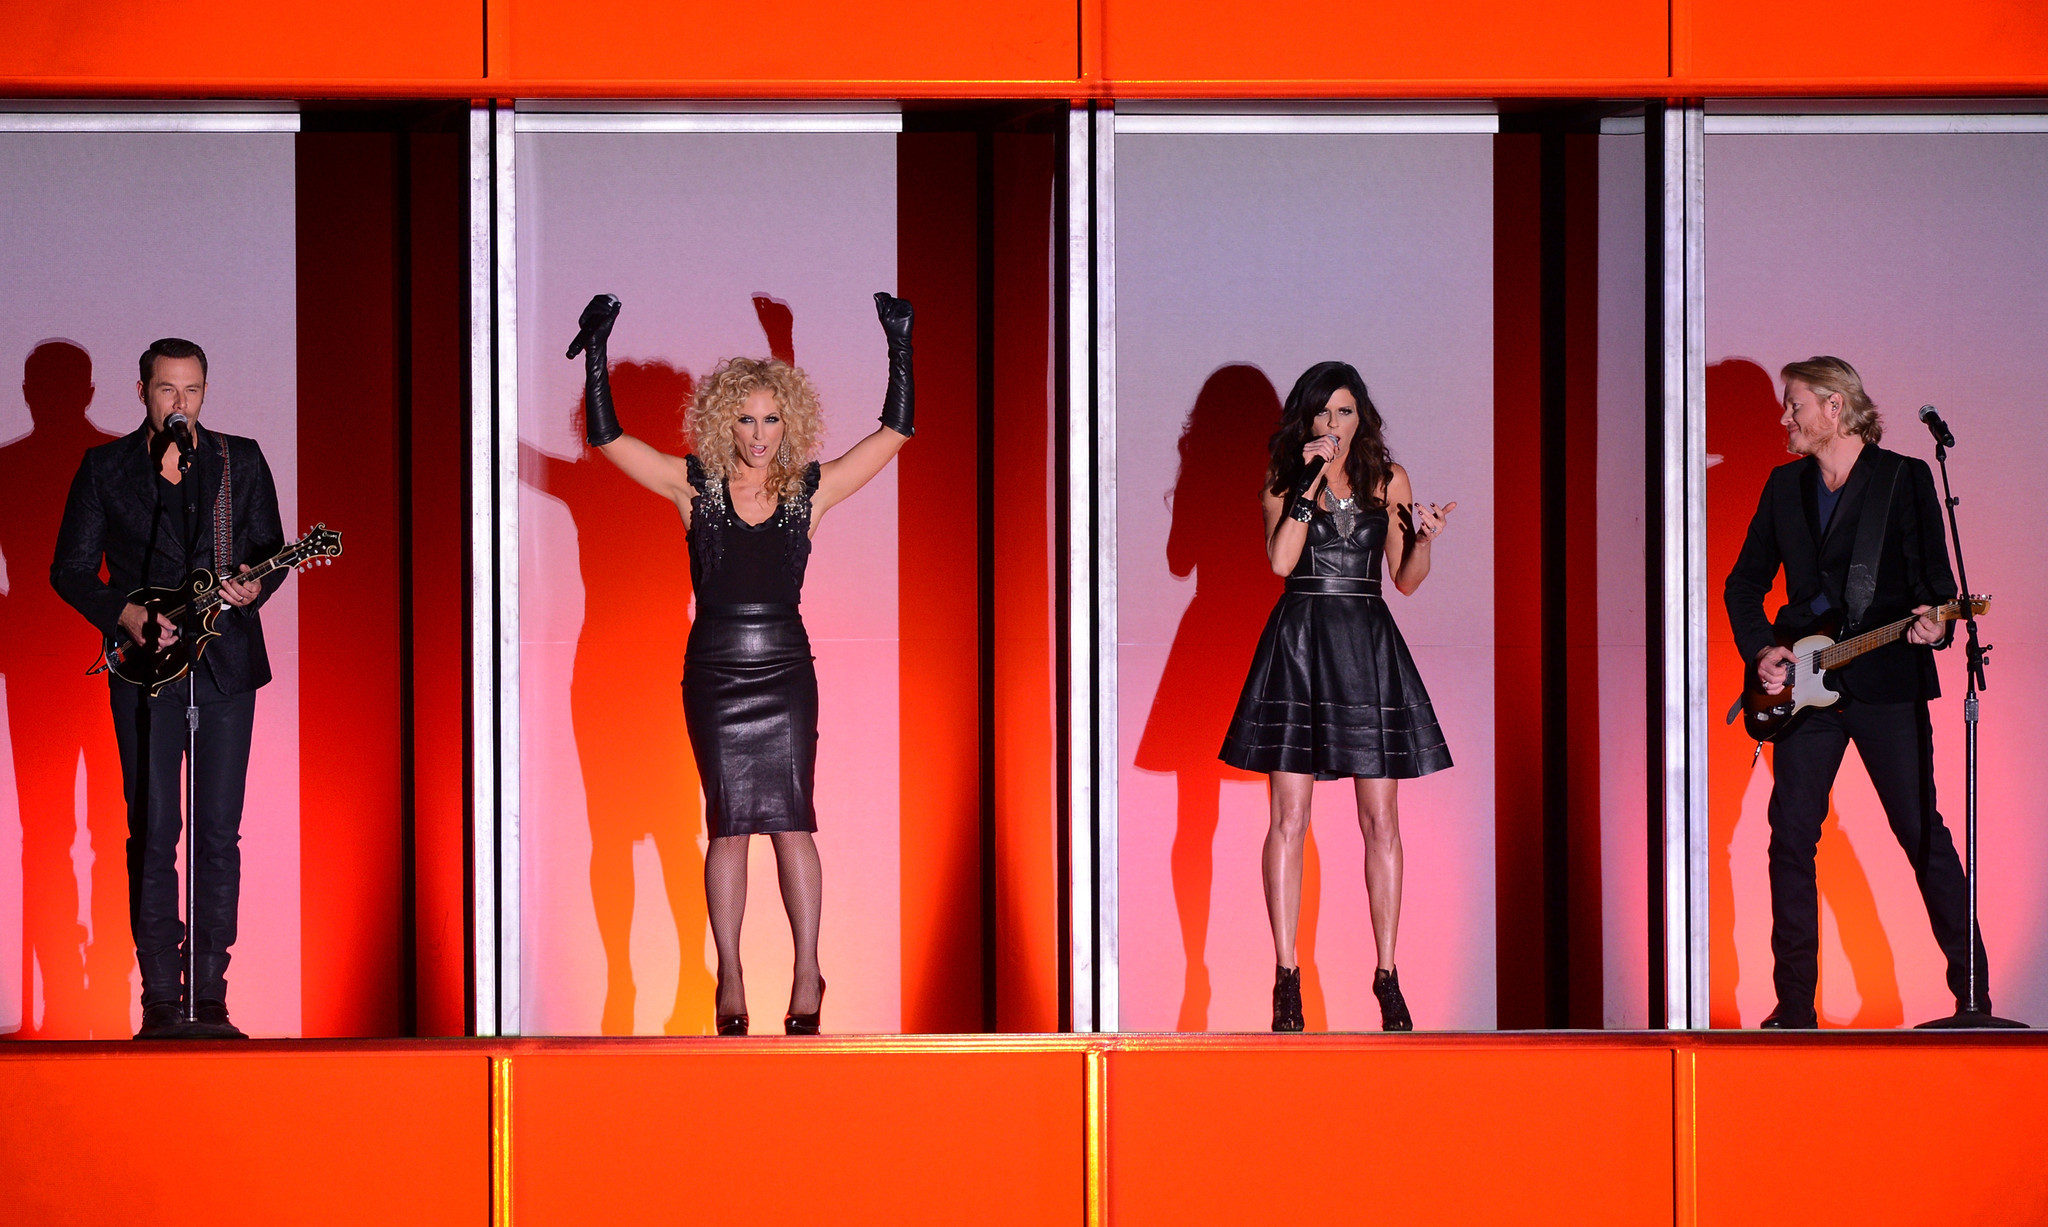 Little Big Town's 'Girl Crush' rankles puritanical country radio